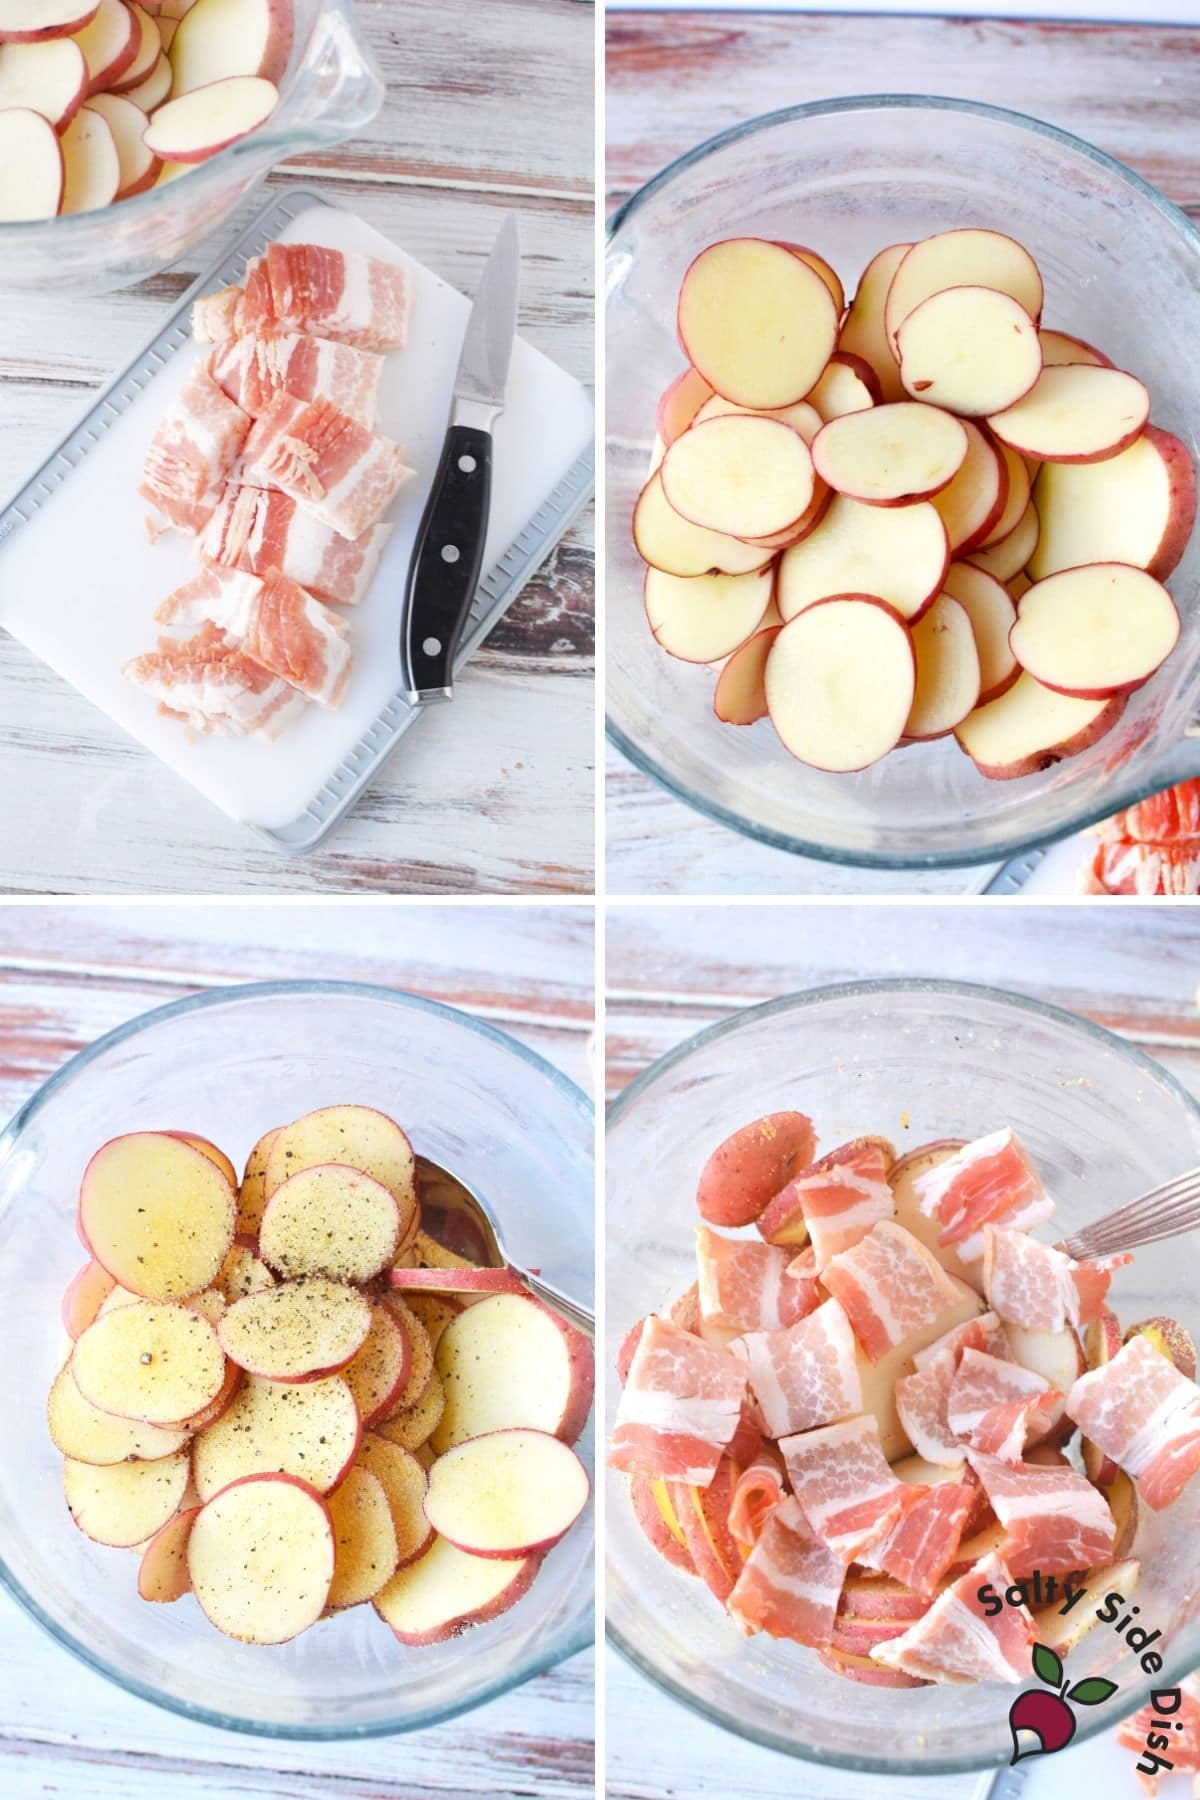 bacon and sliced red potatoes in a bowl